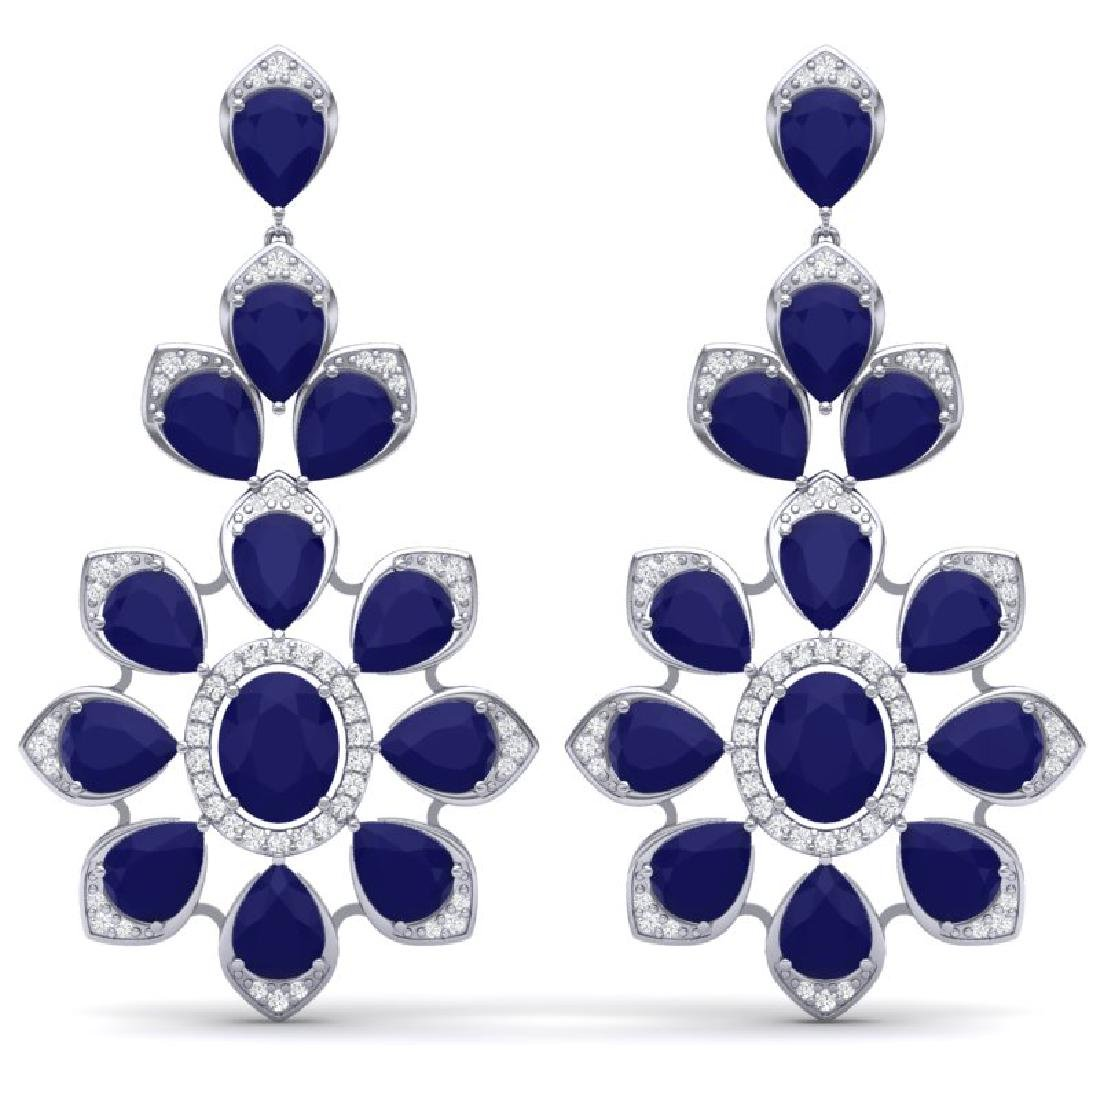 51.8 CTW Royalty Sapphire & VS Diamond Earrings 18K